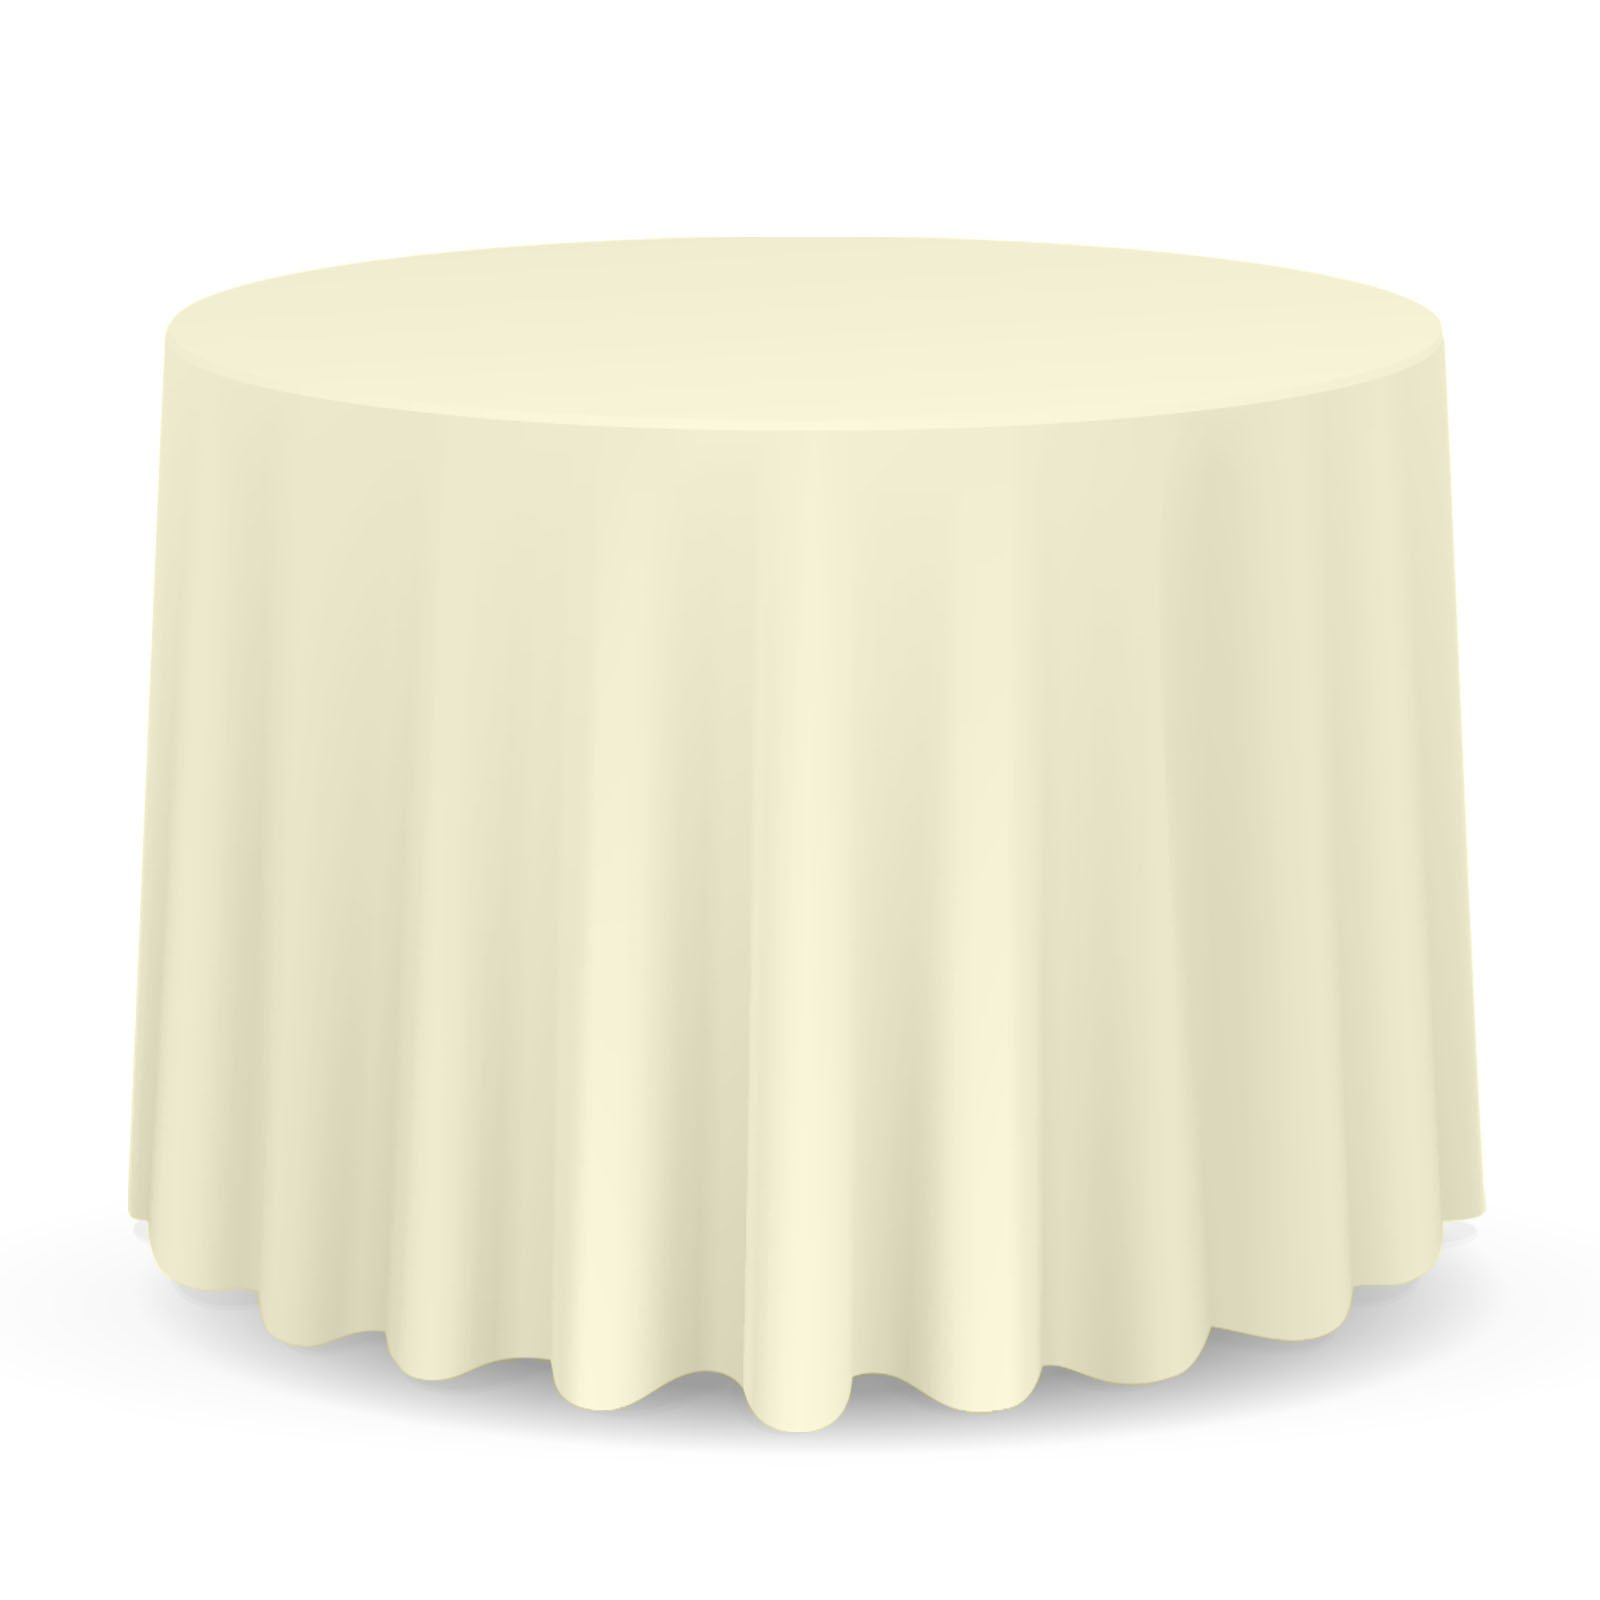 Lann's Linens - 10 Premium 120'' Round Tablecloths for Wedding / Banquet / Restaurant - Polyester Fabric Table Cloths - Ivory